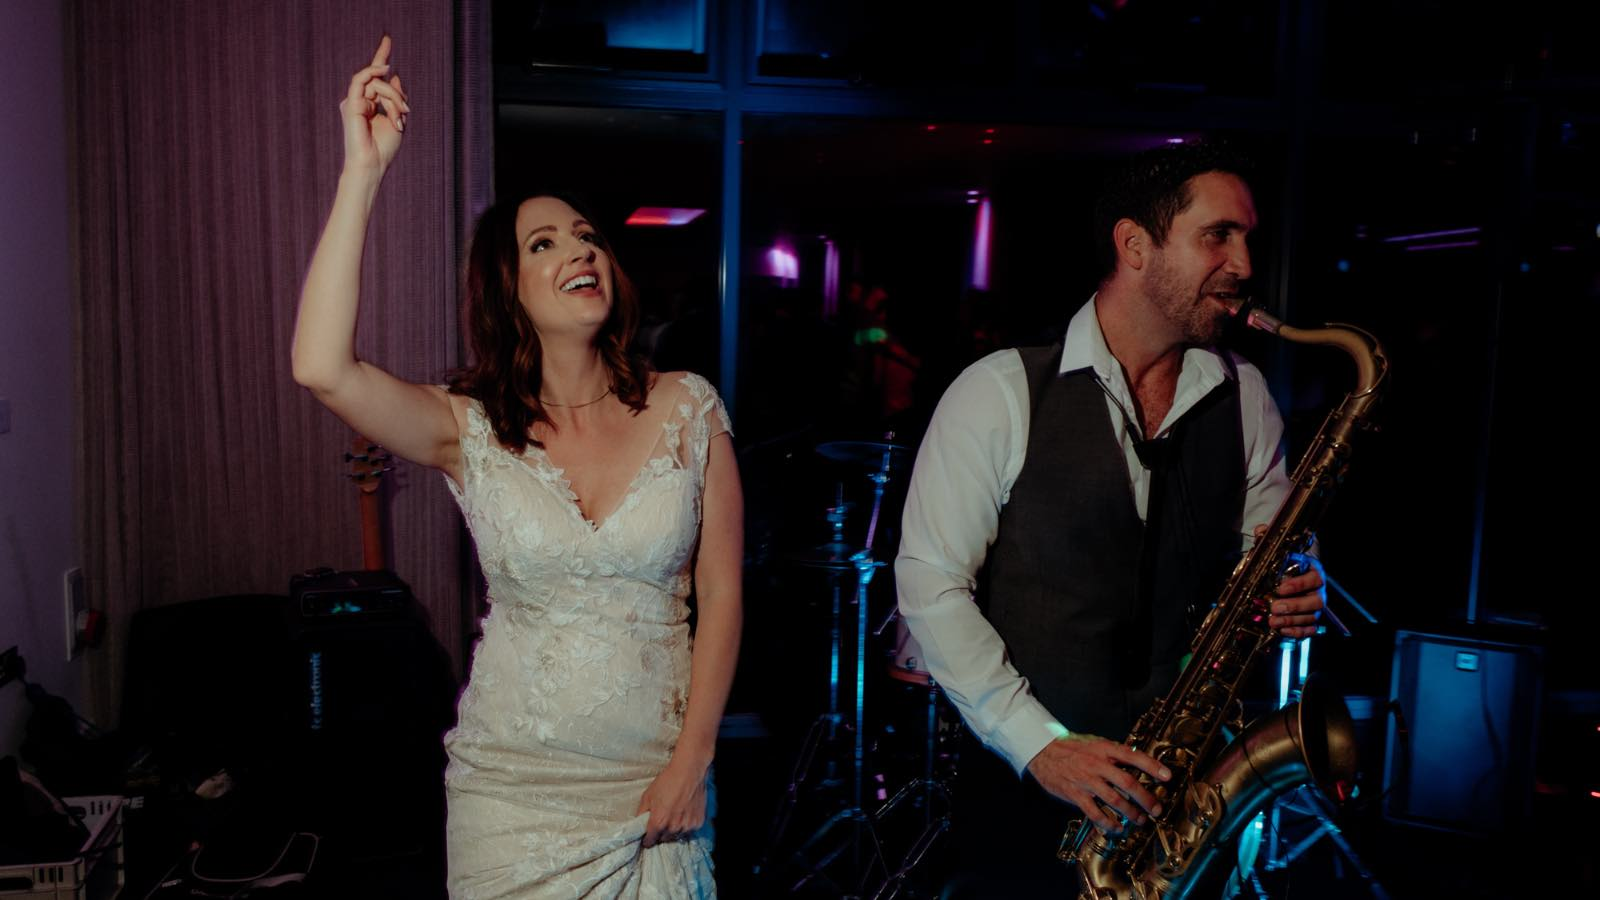 Image of a bride dancing next to a male wedding saxophonist during a wedding reception at the Ocean Suite, Carbis Bay Hotel & Estate in Cornwall. The image was taken during a Cornwall Wedding Entertainment package Elastic Lounge provided for Zoe and Nathan Kill on 18th May 2019. The entertainment being performed at the time of the photo was wedding DJ and Saxophone entertainment in Cornwall. This is a background image on the Cornwall Wedding Entertainment website page: https://www.elasticlounge.com/wedding-entertainment-cornwall and overlaying the image is a course of recent testimonials from Cornwall Wedding Entertainment supped by Elastic Lounge. One of the testimonials overlaying the image is from the wedding of Zoe Kill who is in the photo.